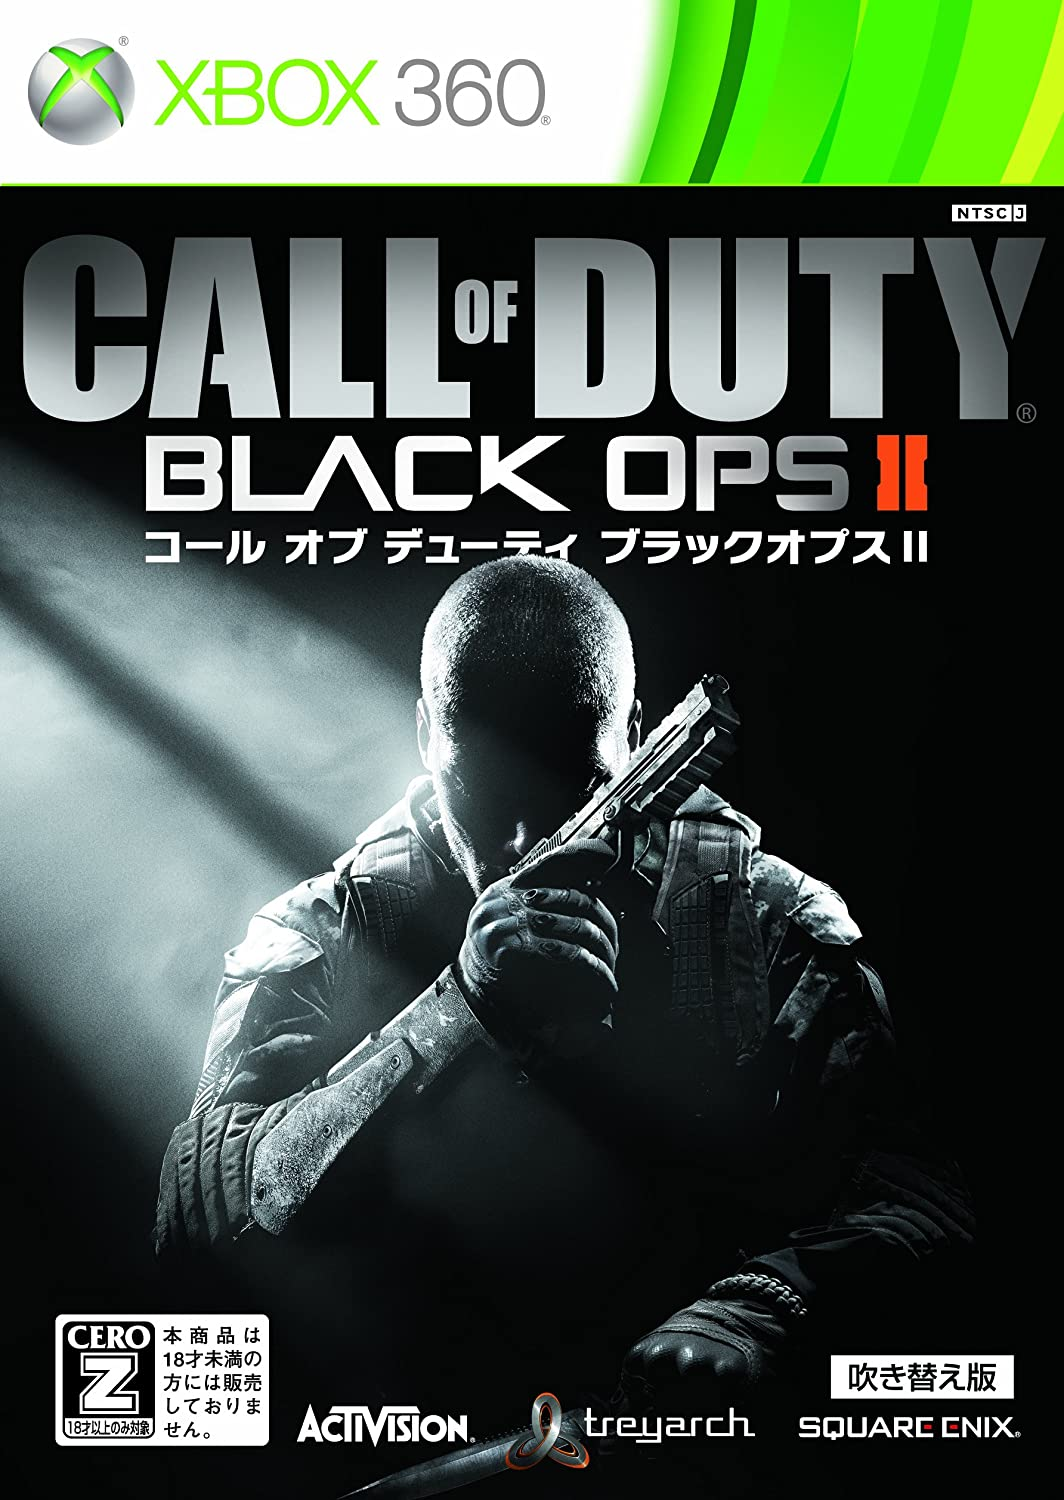 Call of Duty: Black Fort Worth Mall Ops Dubbed Japan Edition Import Trust II